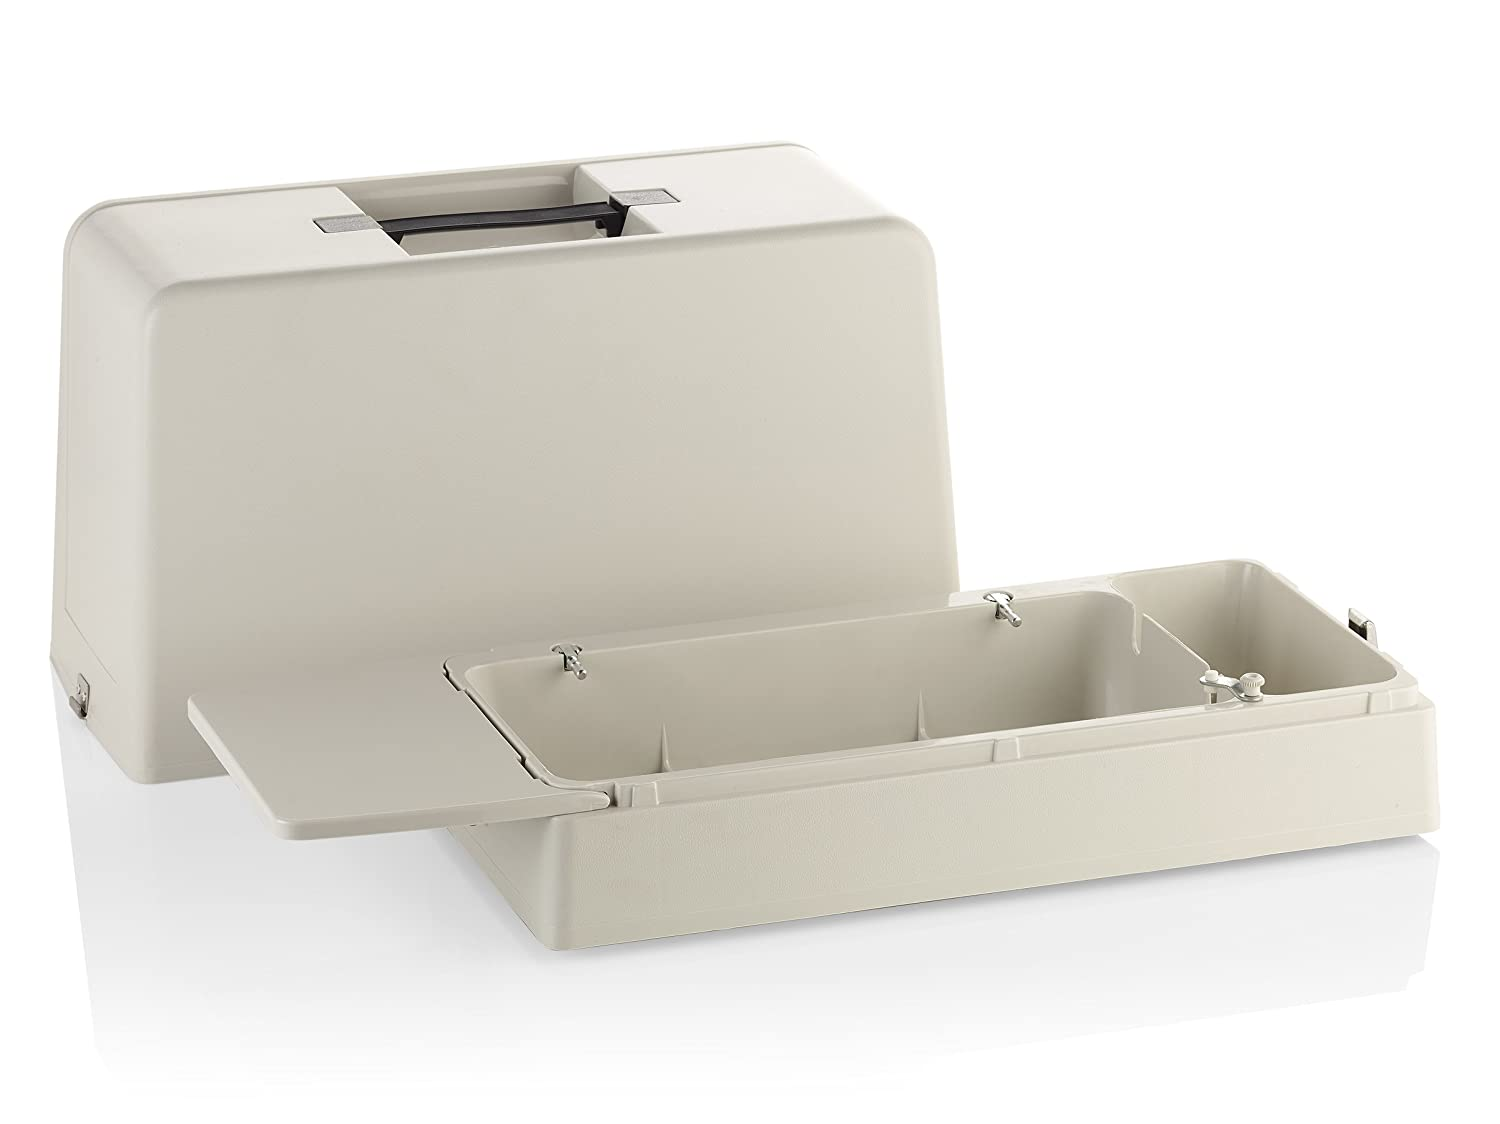 Reliable 200ZWECOCASE - Plastic Carrying Case for Barracuda 200ZW Sewing Machine Reliable Corporation